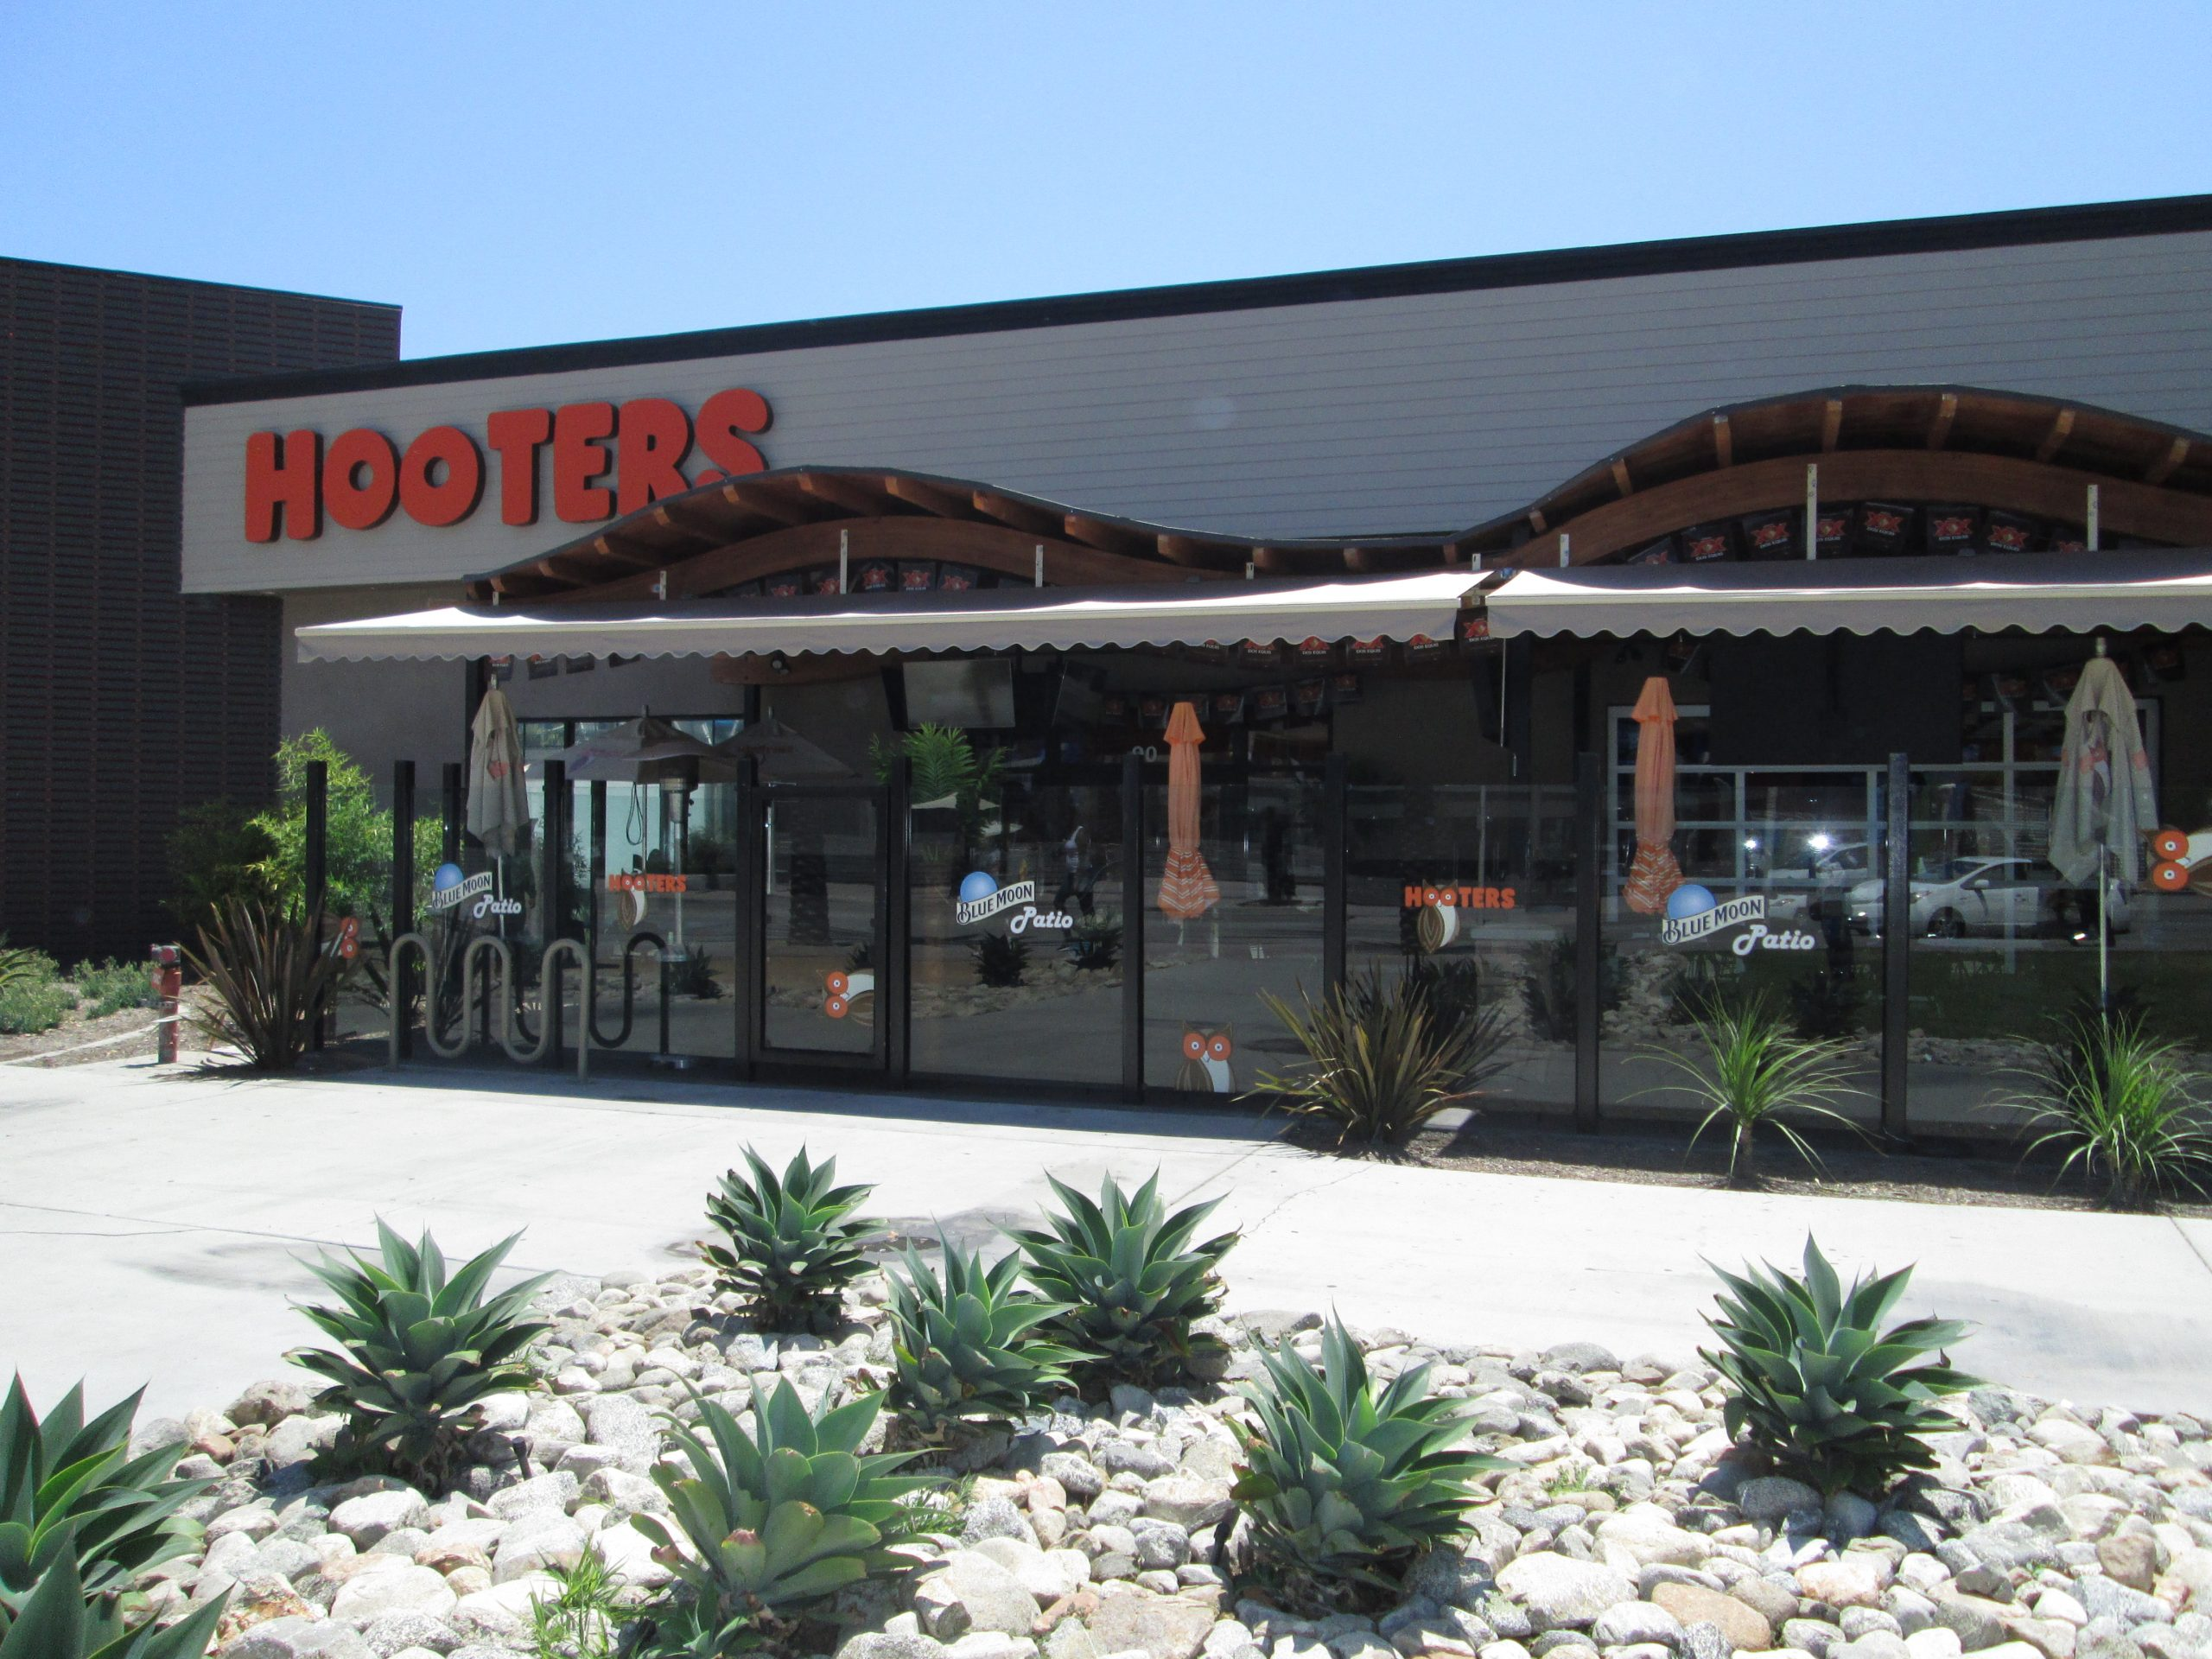 California Commercial Awnings Installed in Hooters